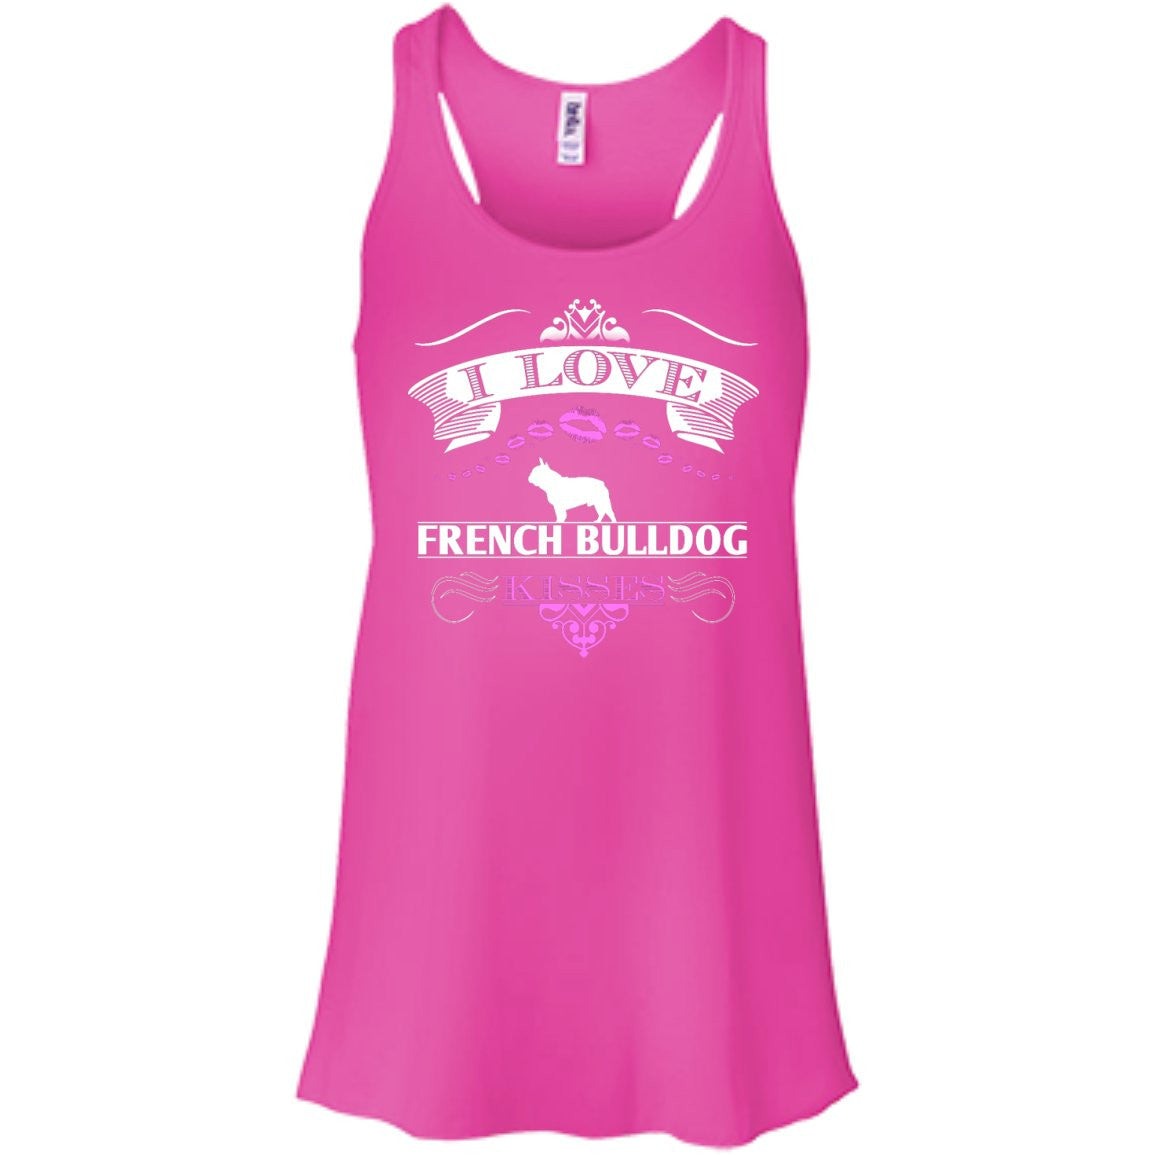 I LOVE FRENCH BULLDOG KISSES - FRONT DESIGN - Bella+Canvas Flowy Racerback Tank